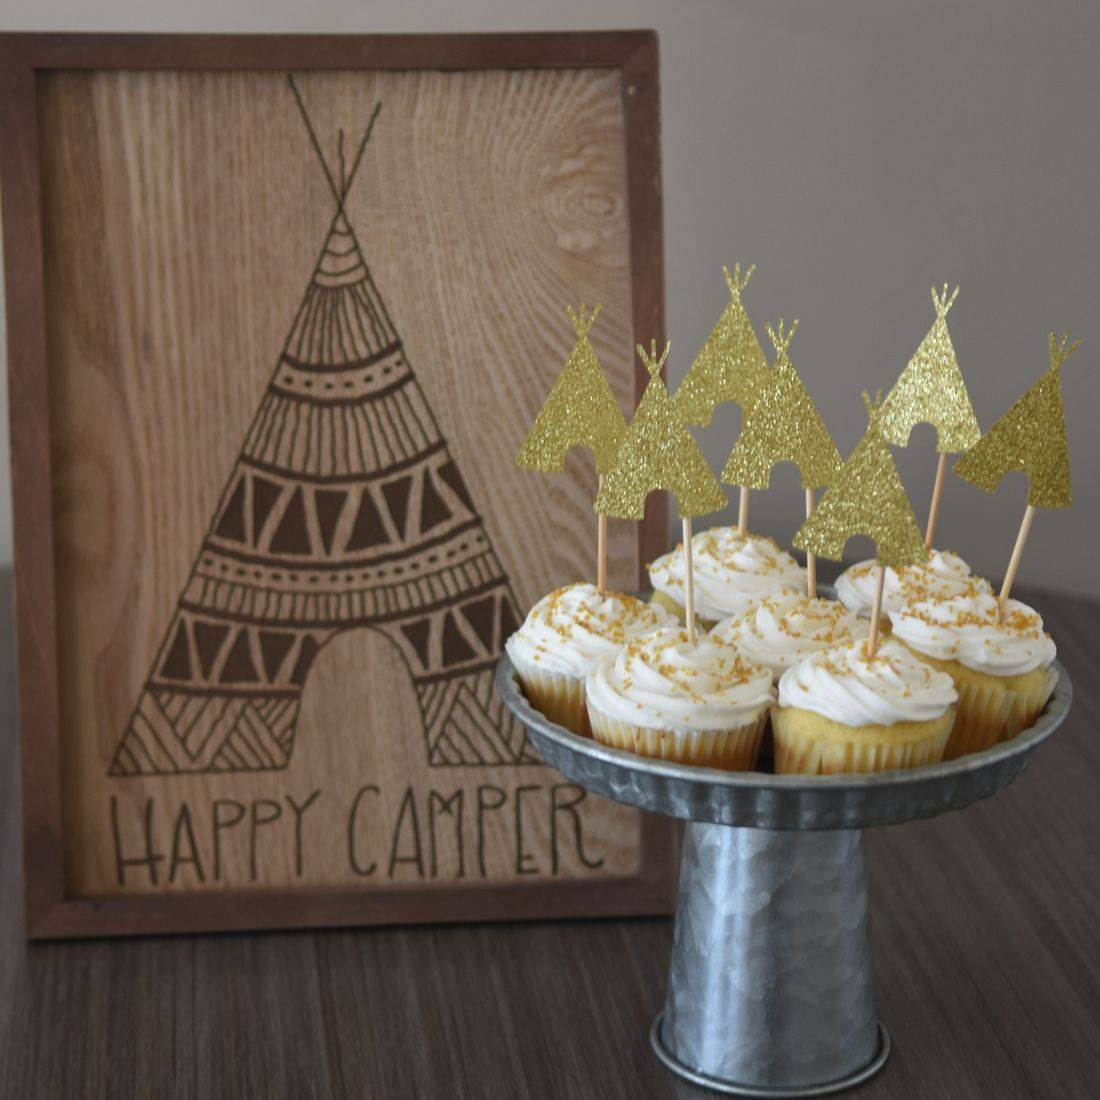 Kids party rentals, teepee rentals, party rentals, Happy Campers, Happy Glampers, Newport Beach, Orange County, teepees, indoor, campsite, new, town, party, parties, bakery, cupcakes, toppers